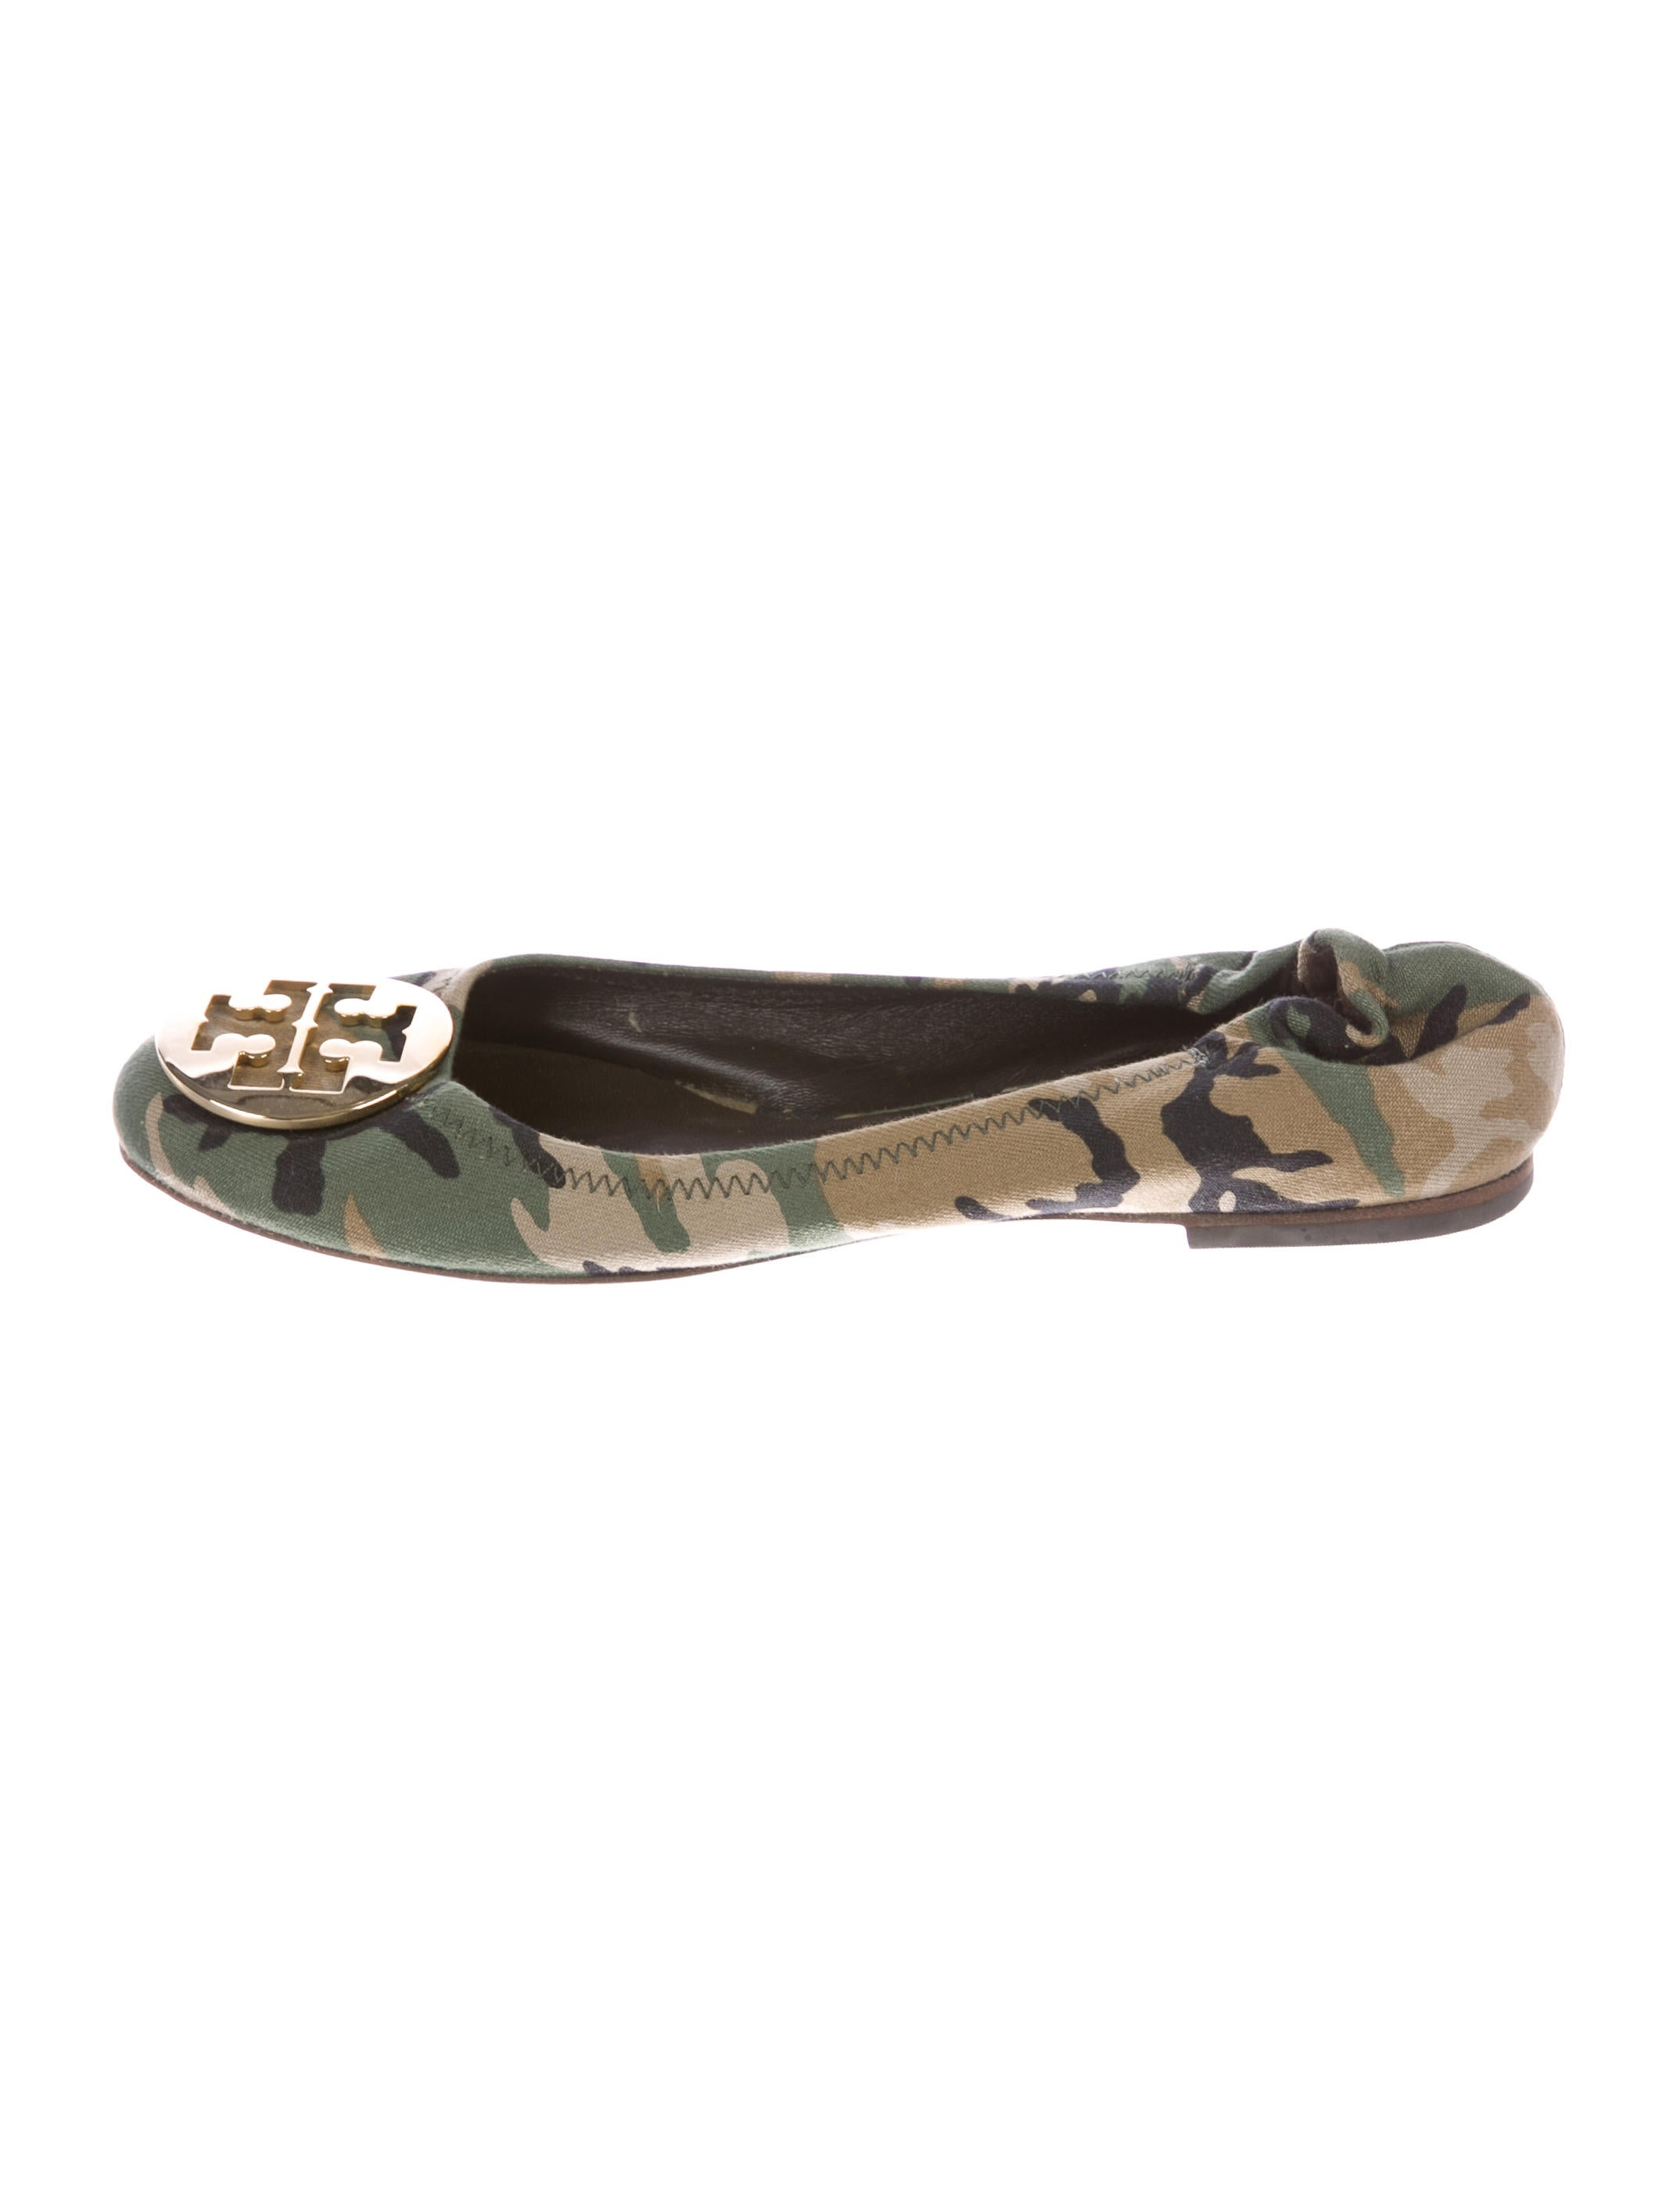 ab0ca1056ac2 Tory Burch Reva Camouflage Flats - Shoes - WTO126602